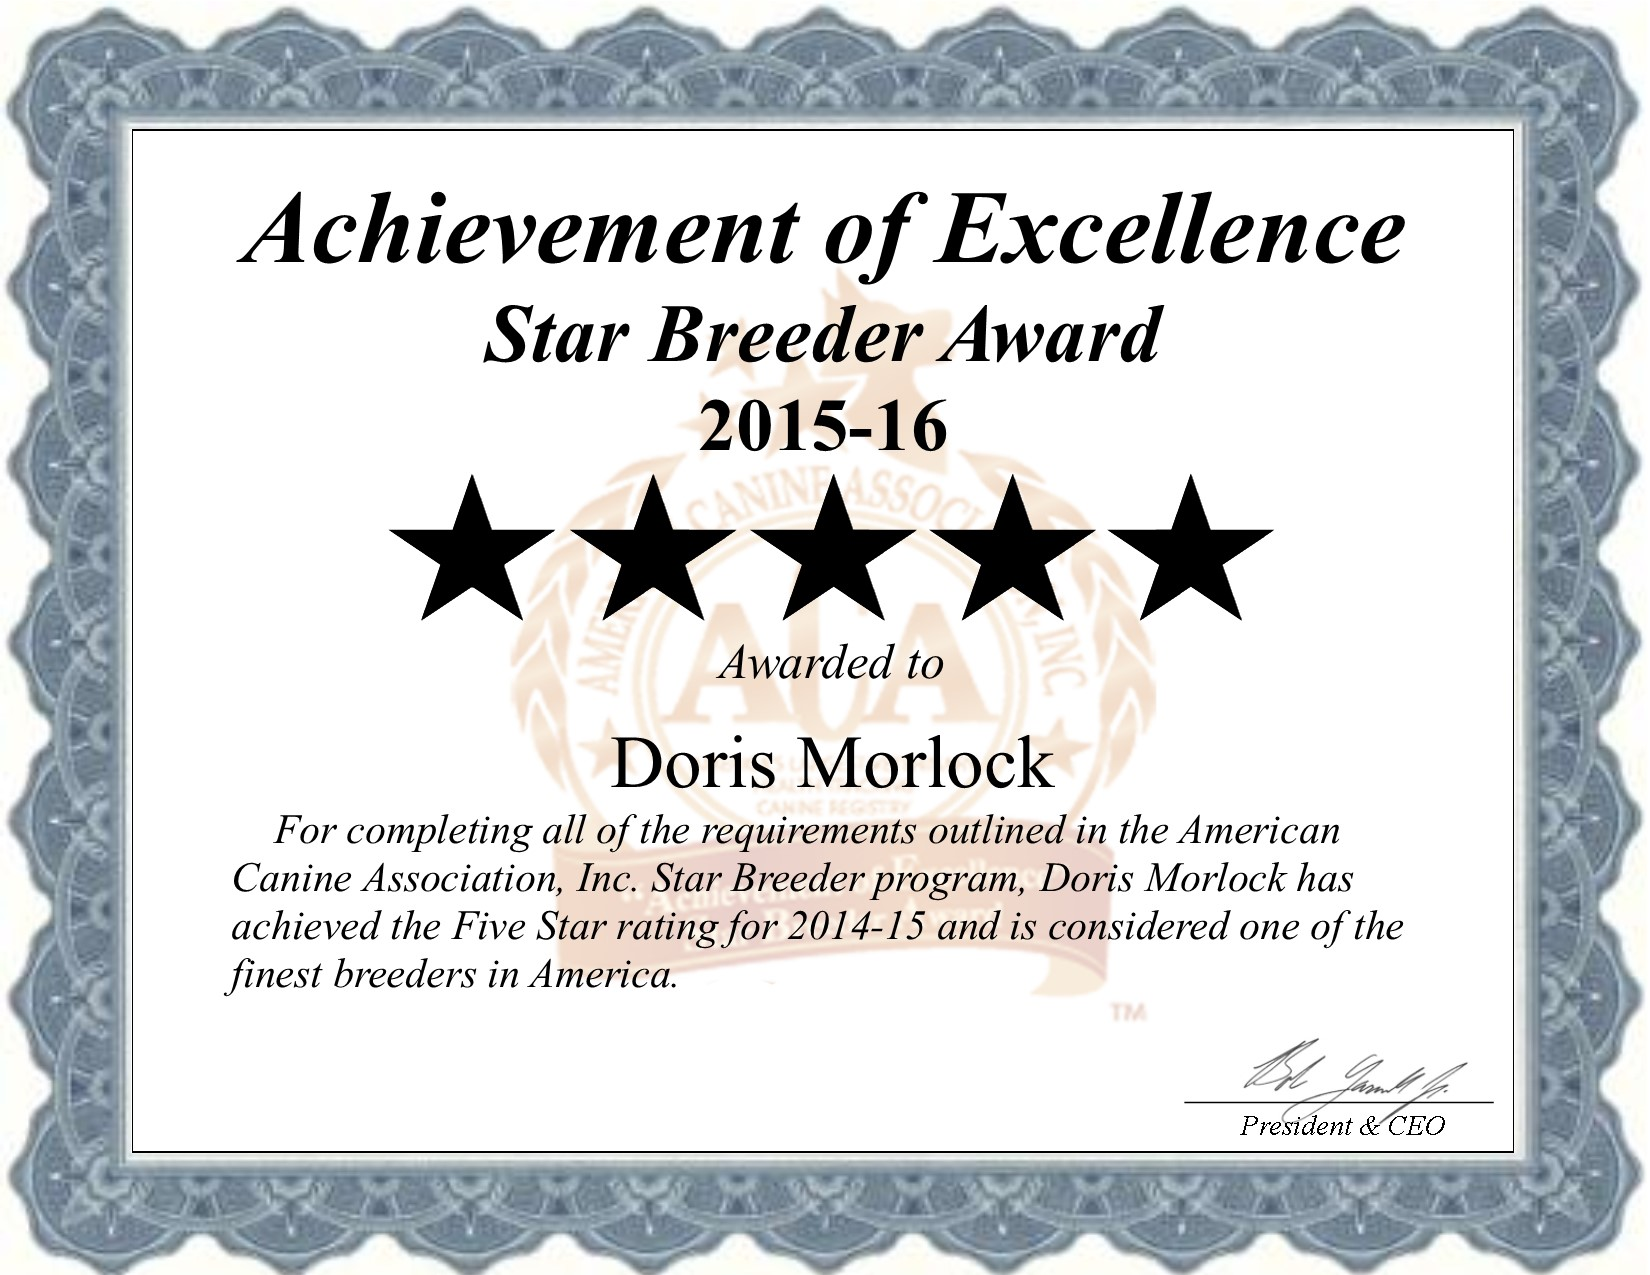 Doris, Morlock, dog, breeder, doris-morlock, dog-breeder, kennel, Morlock Kennels, Kennel, starbreeder, star breeder, 5 star, USDA, KS, Franklin, Kansas, puppymill, mill, puppy-mill, dog law,dog, puppy, puppies, ACA, Doris Morlock Kansas